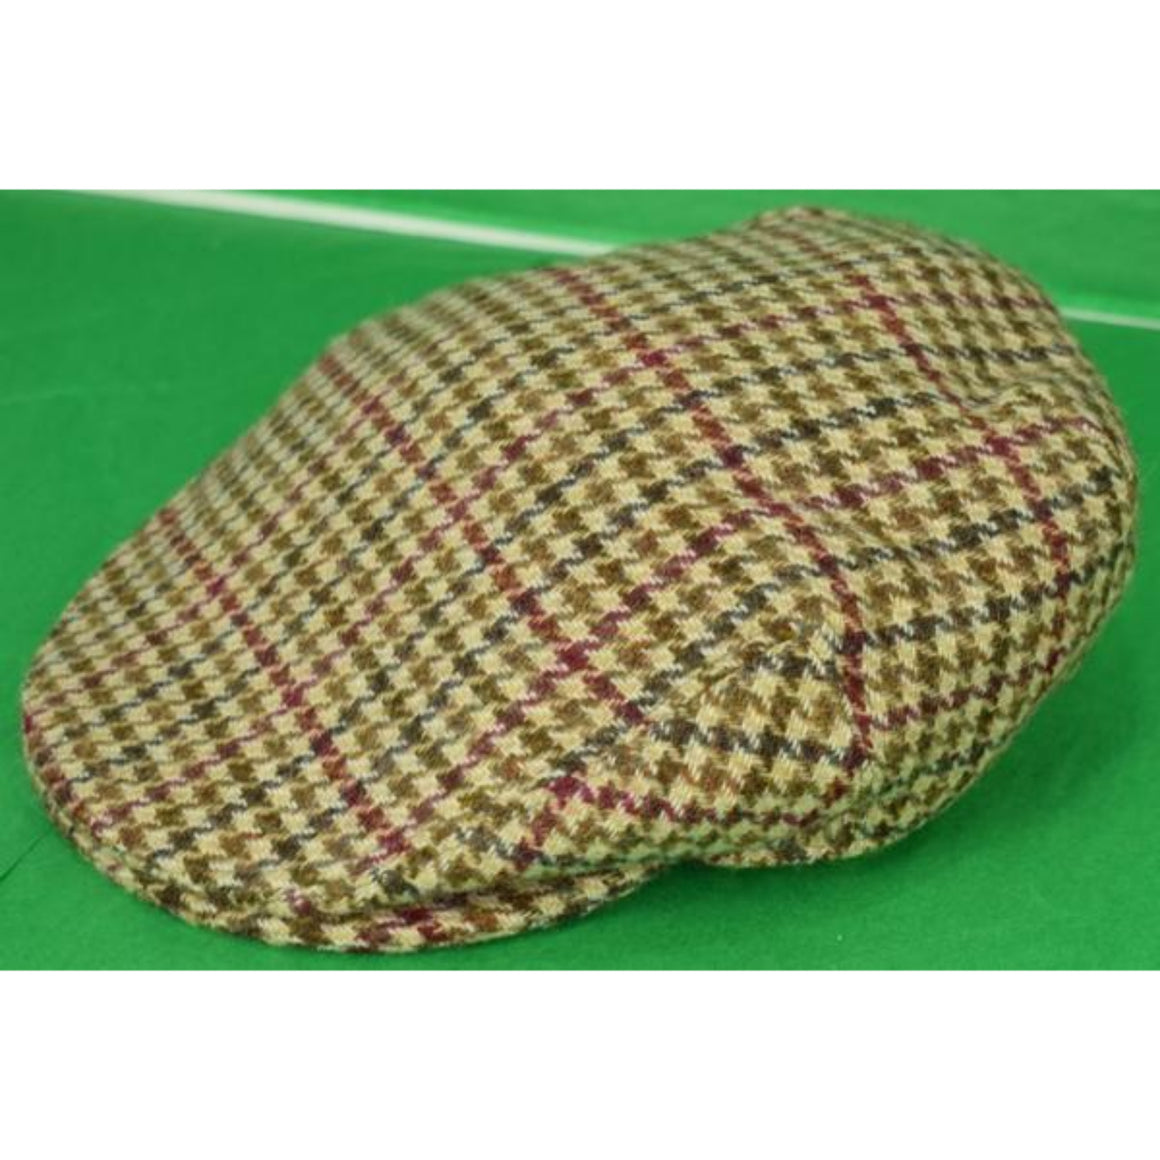 'W Bill Ltd. Bond Street Glen/ Gun Check Tweed Cap'